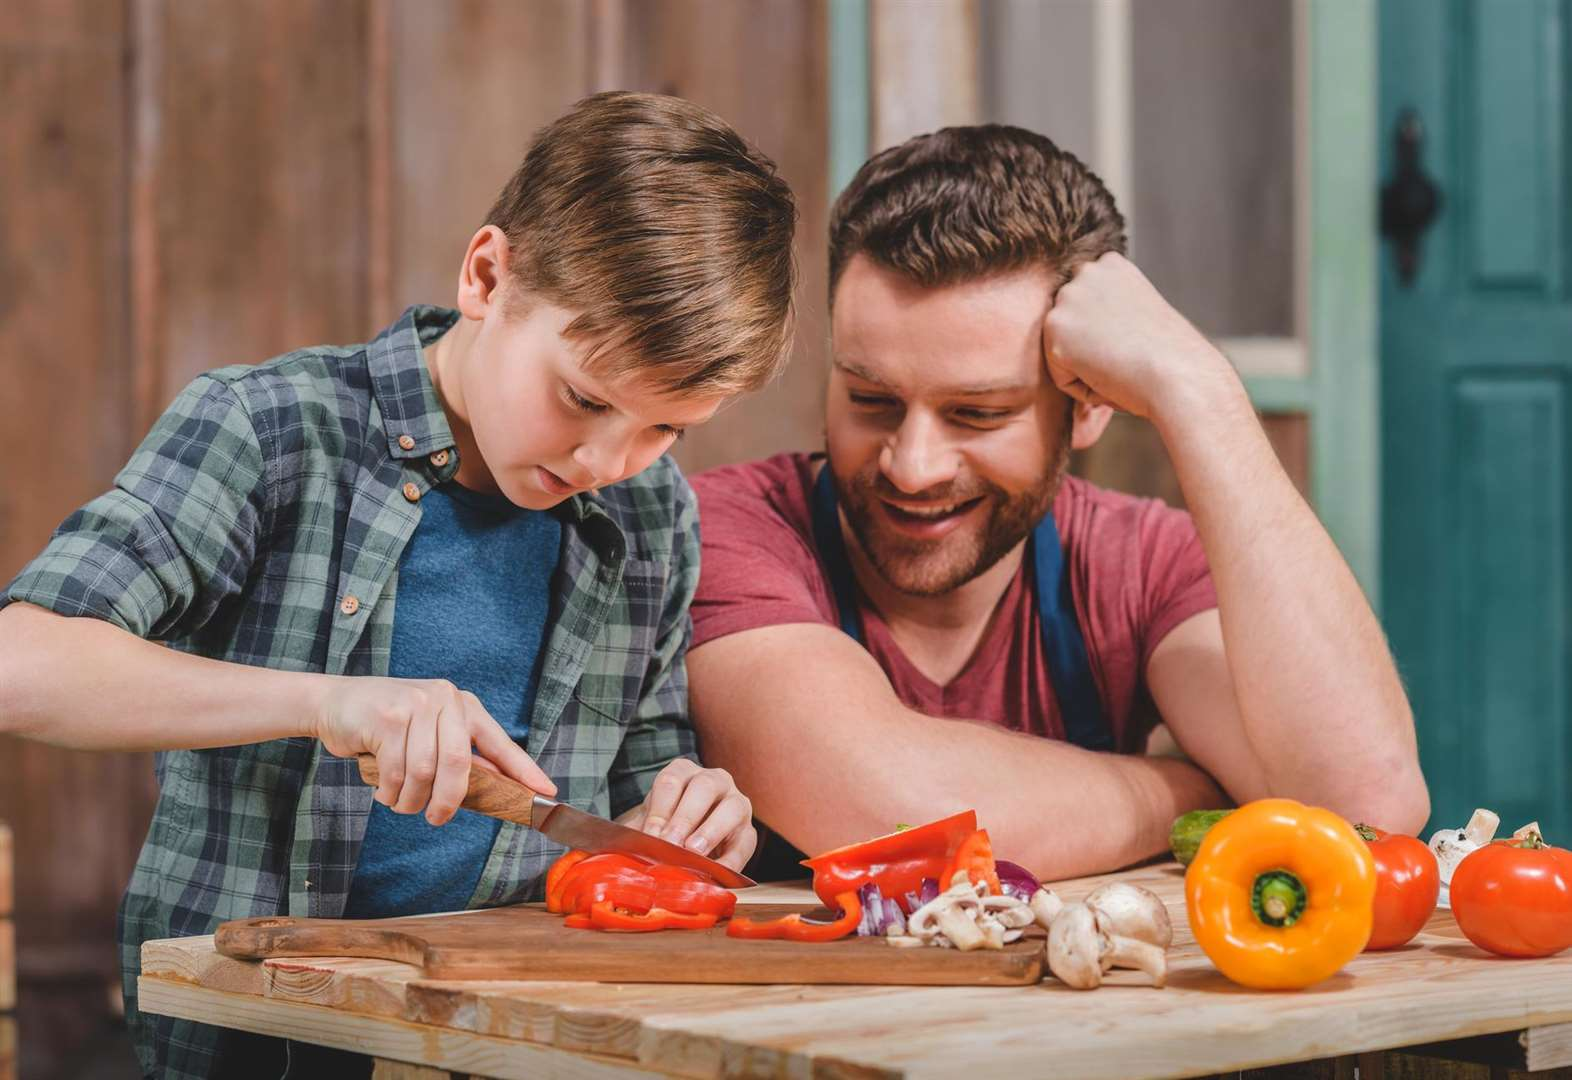 Basic cooking skills: how many do your kids know?